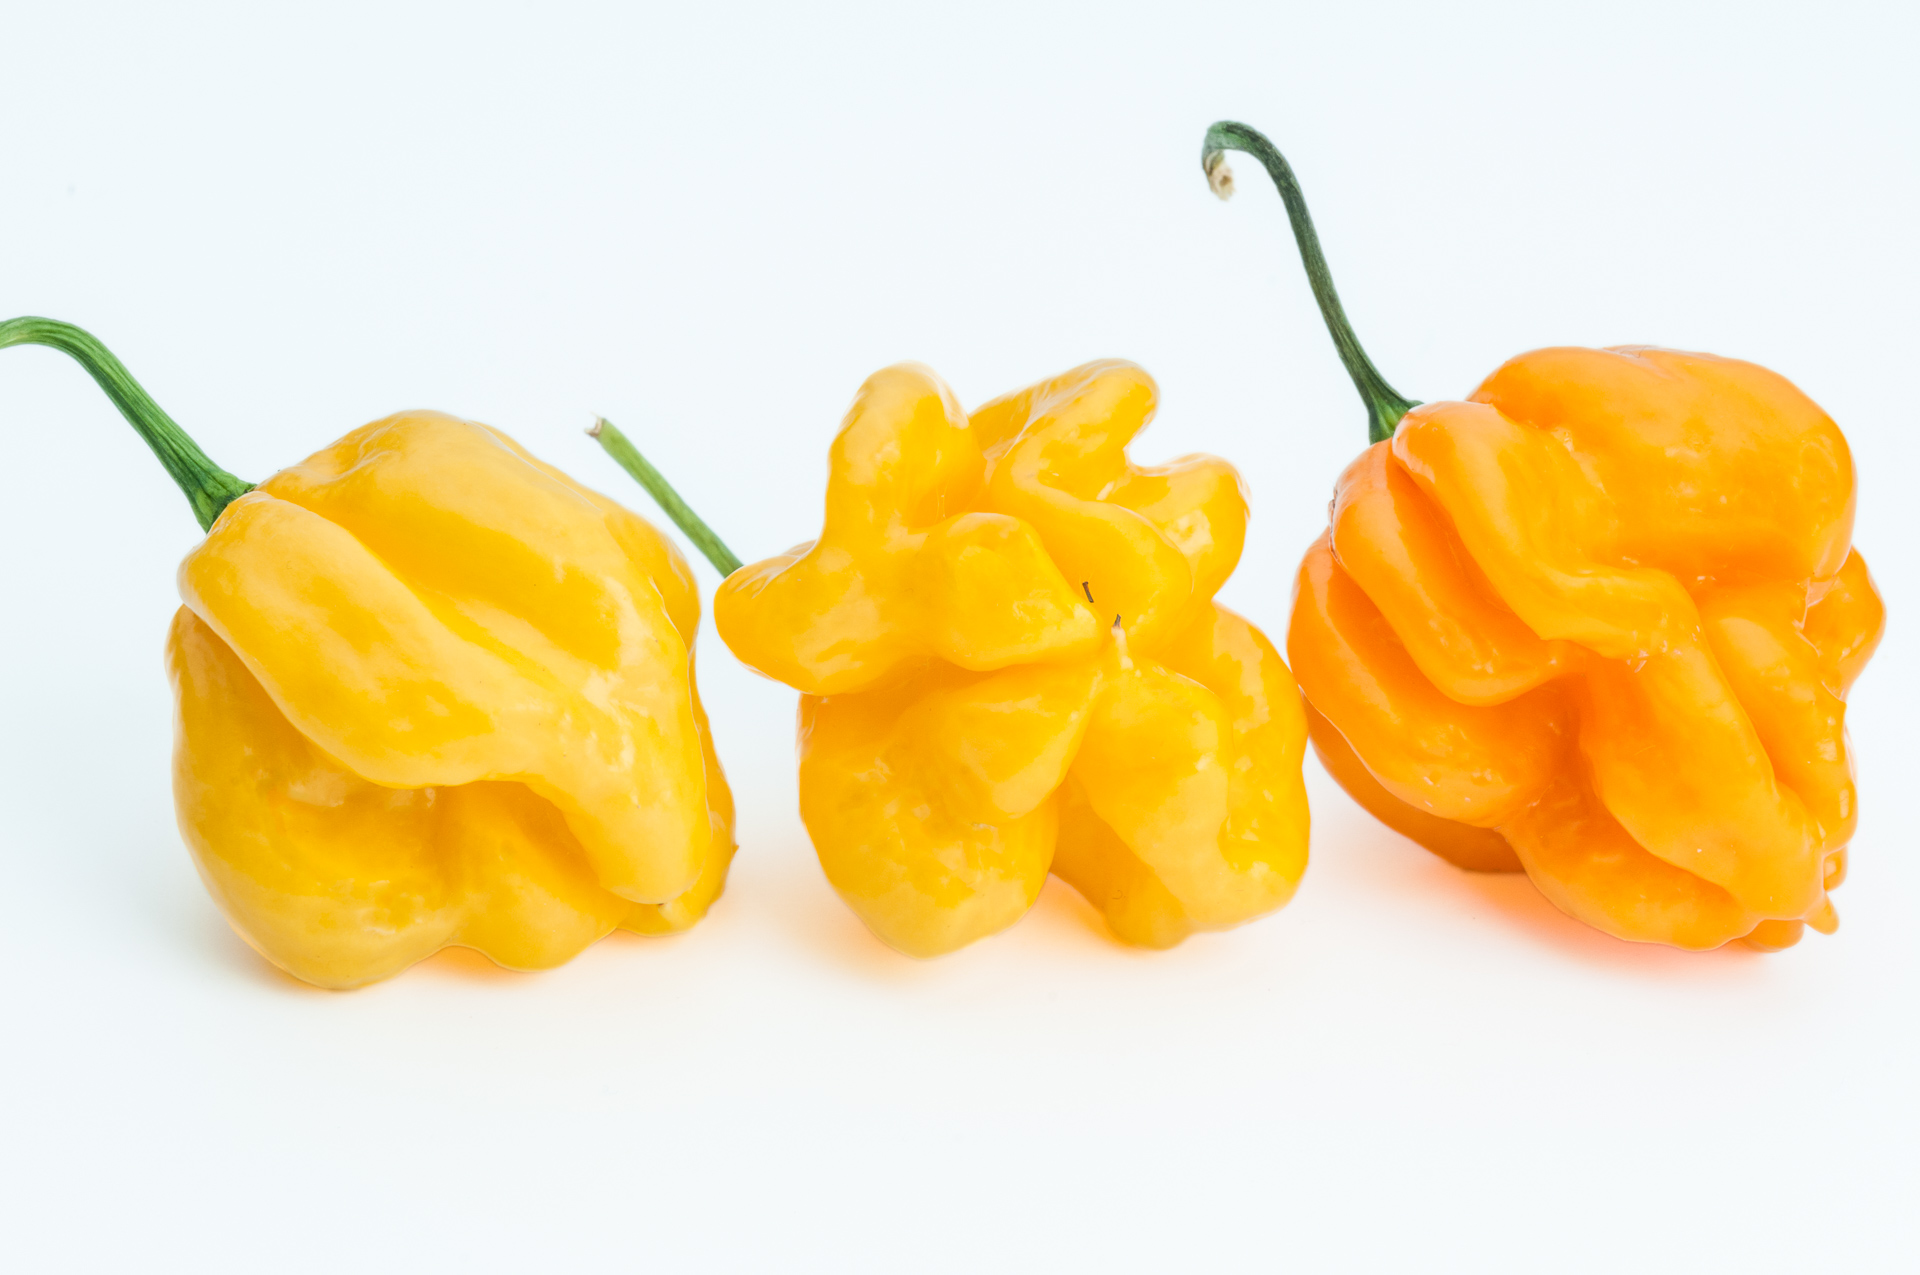 CGN24362 - Capsicum frutescens - Chilisorte